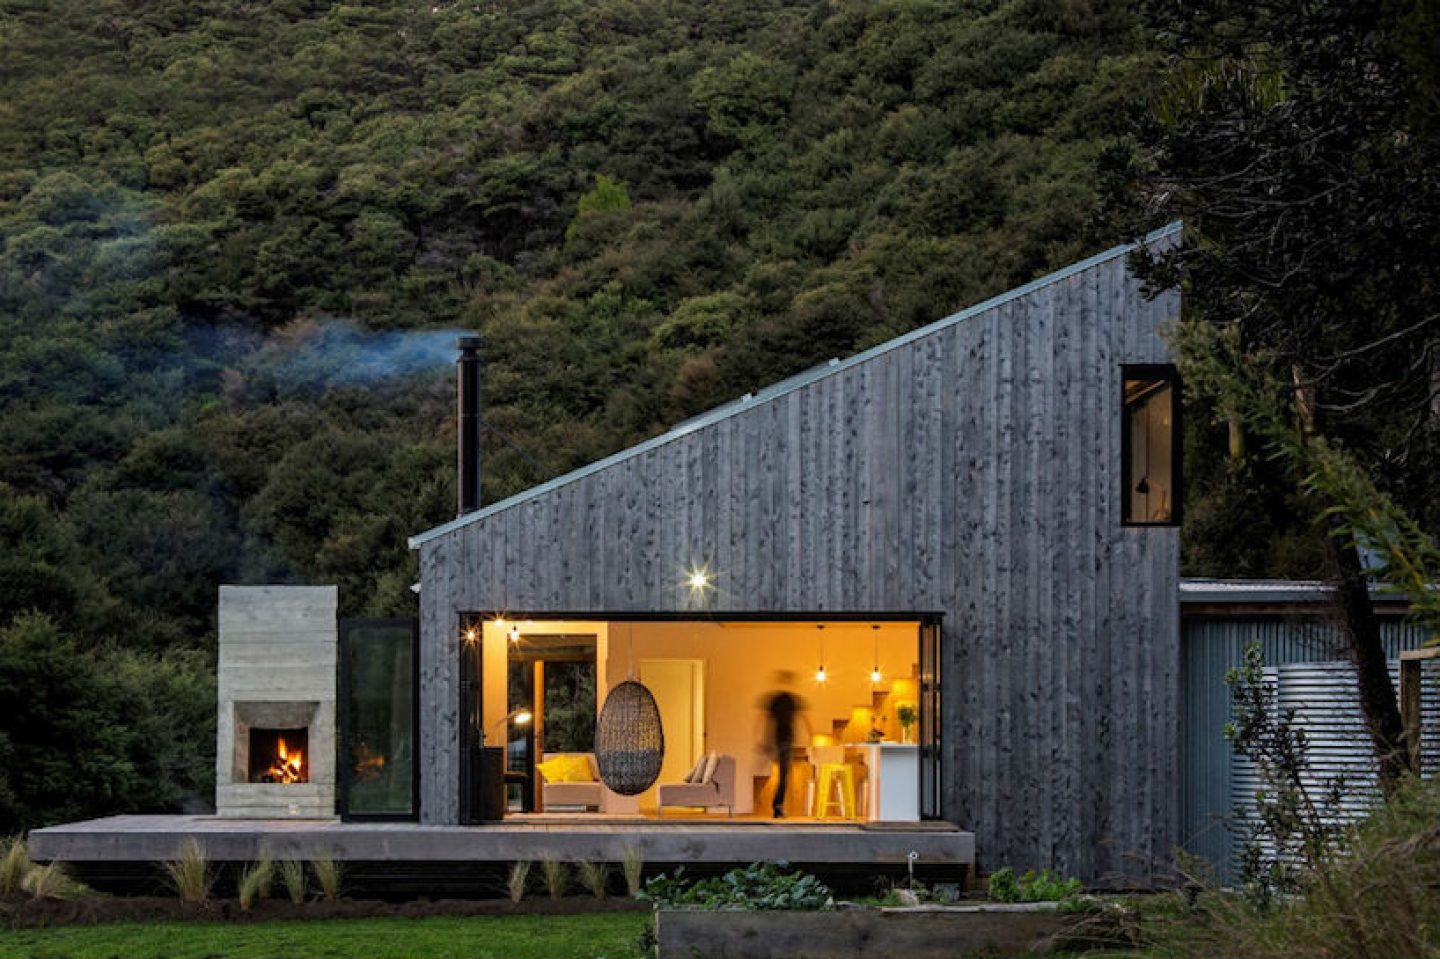 david-maurice-LTD-architectural-back-country-house-puhoi-new-zealand-ignant_02